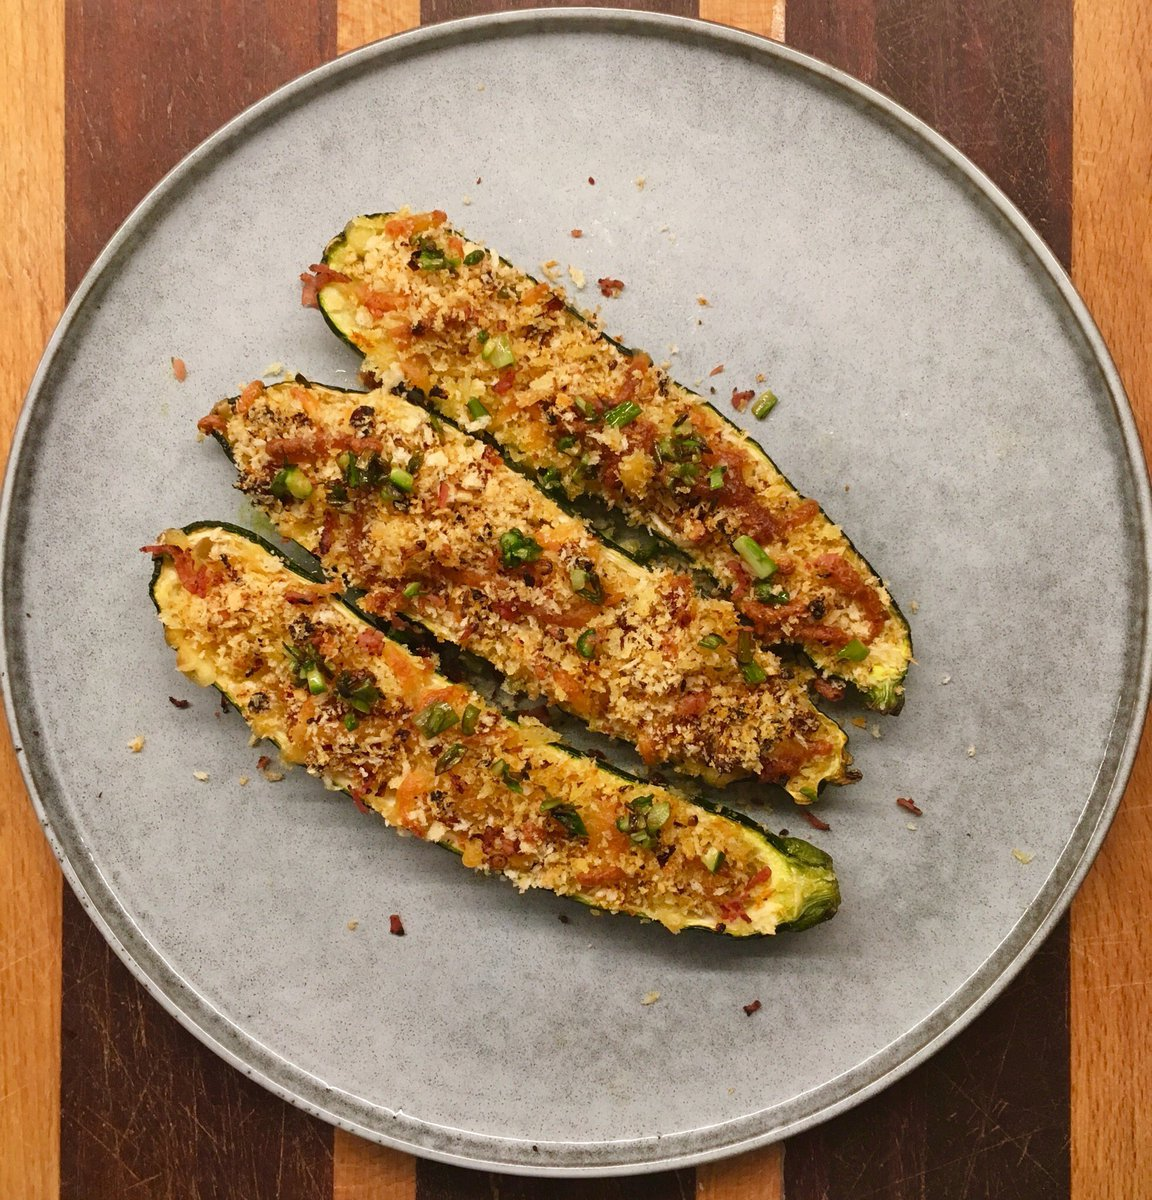 #Homecooking time....my 'zucchine ripiene' stuffed #zucchini with breadcrumbs, parmesan, prosciutto &amp; sun-dried tomatoes!  #MasterChefau #cucina #foodie #italianfood #makeitdelicious #cookwithpassion<br>http://pic.twitter.com/HQ0TsbdPKp